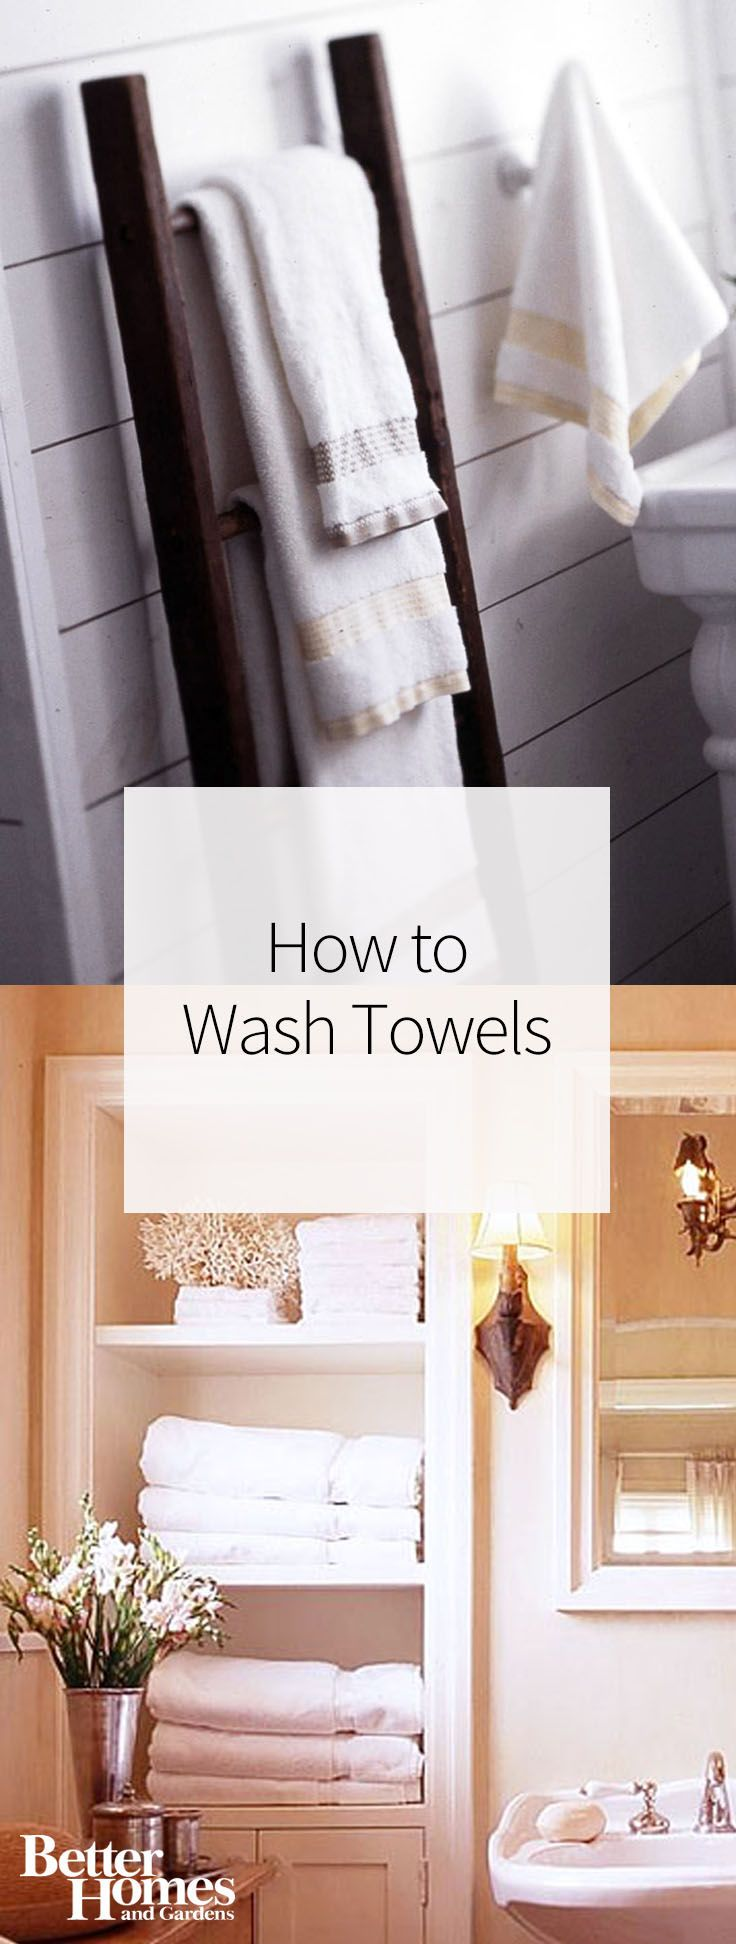 There are many ways to get towels clean, but we're sharing the best way to wash towels with vinegar, detergent, and more. You'll also learn how often to wash towels to keep them clean and ready to use in the bathroom.